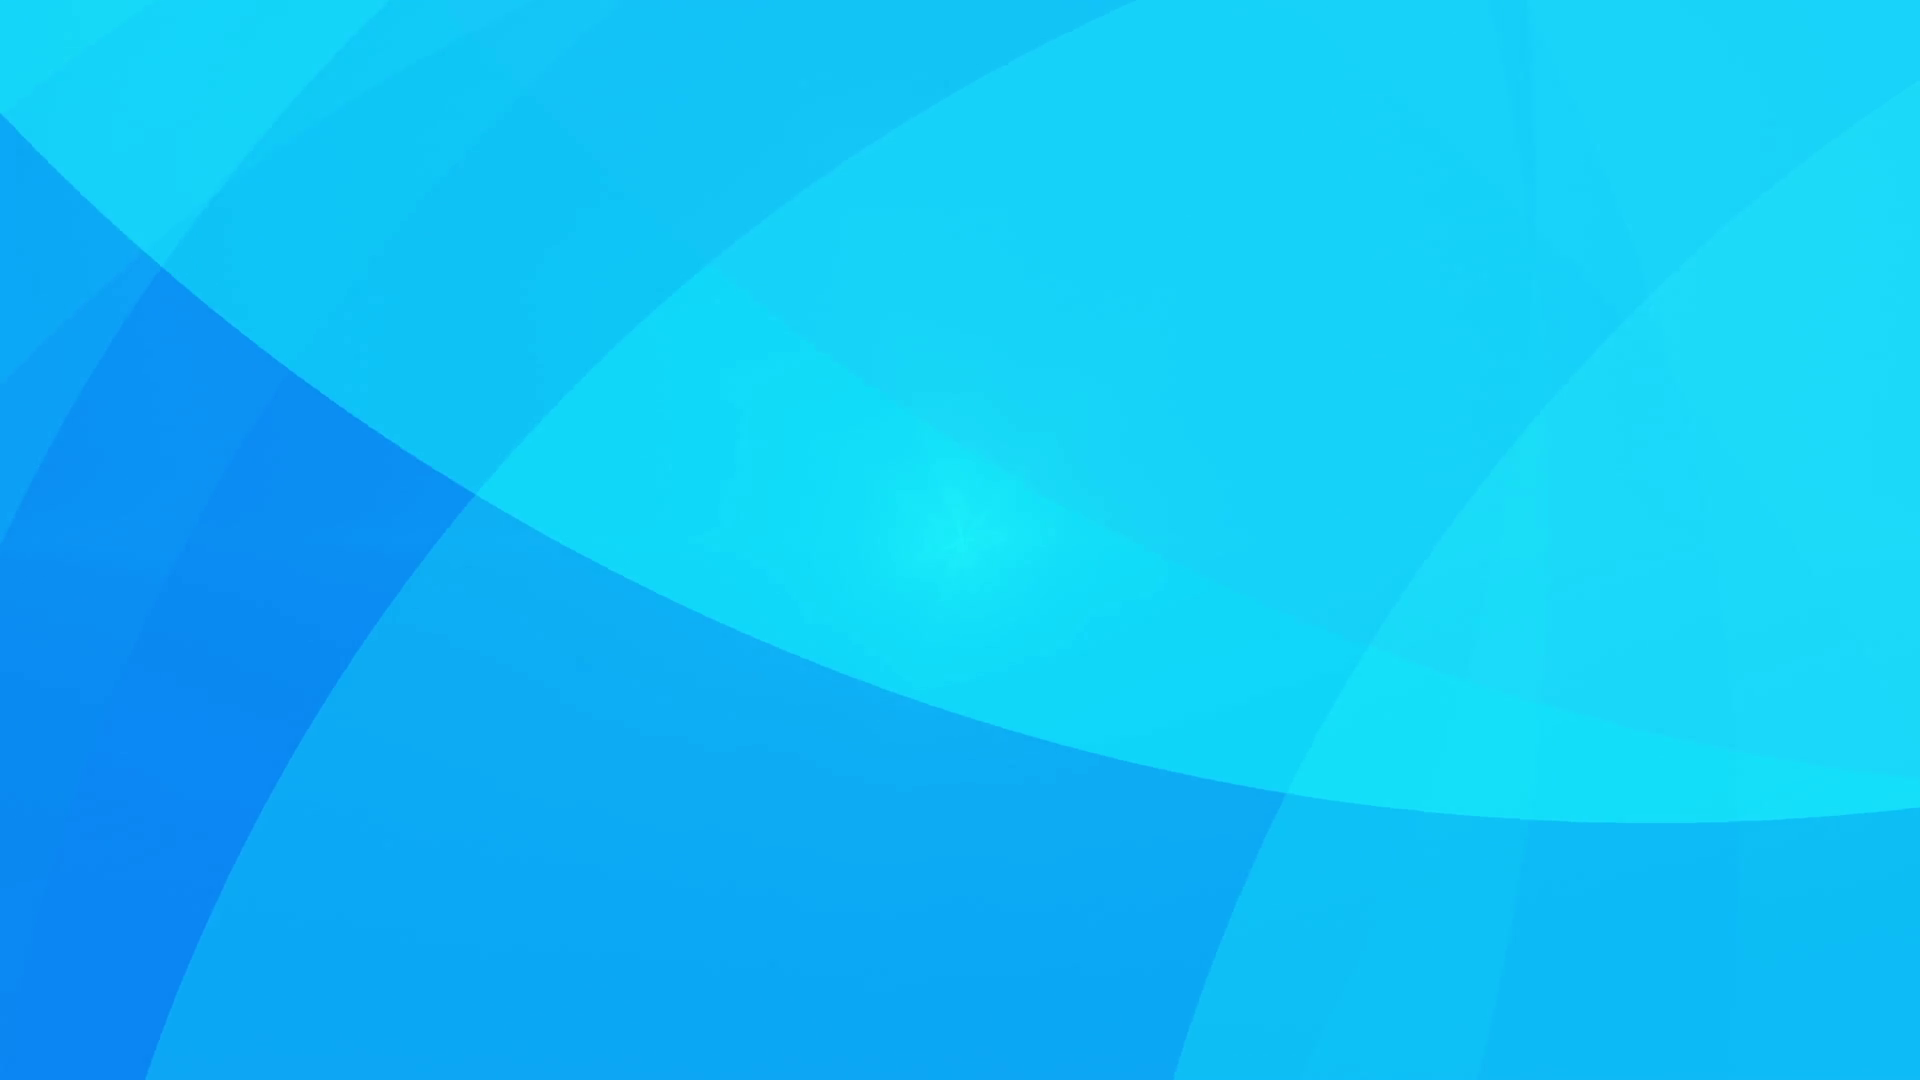 Blue Abstract Background loop. Corporate And Technology Background ...